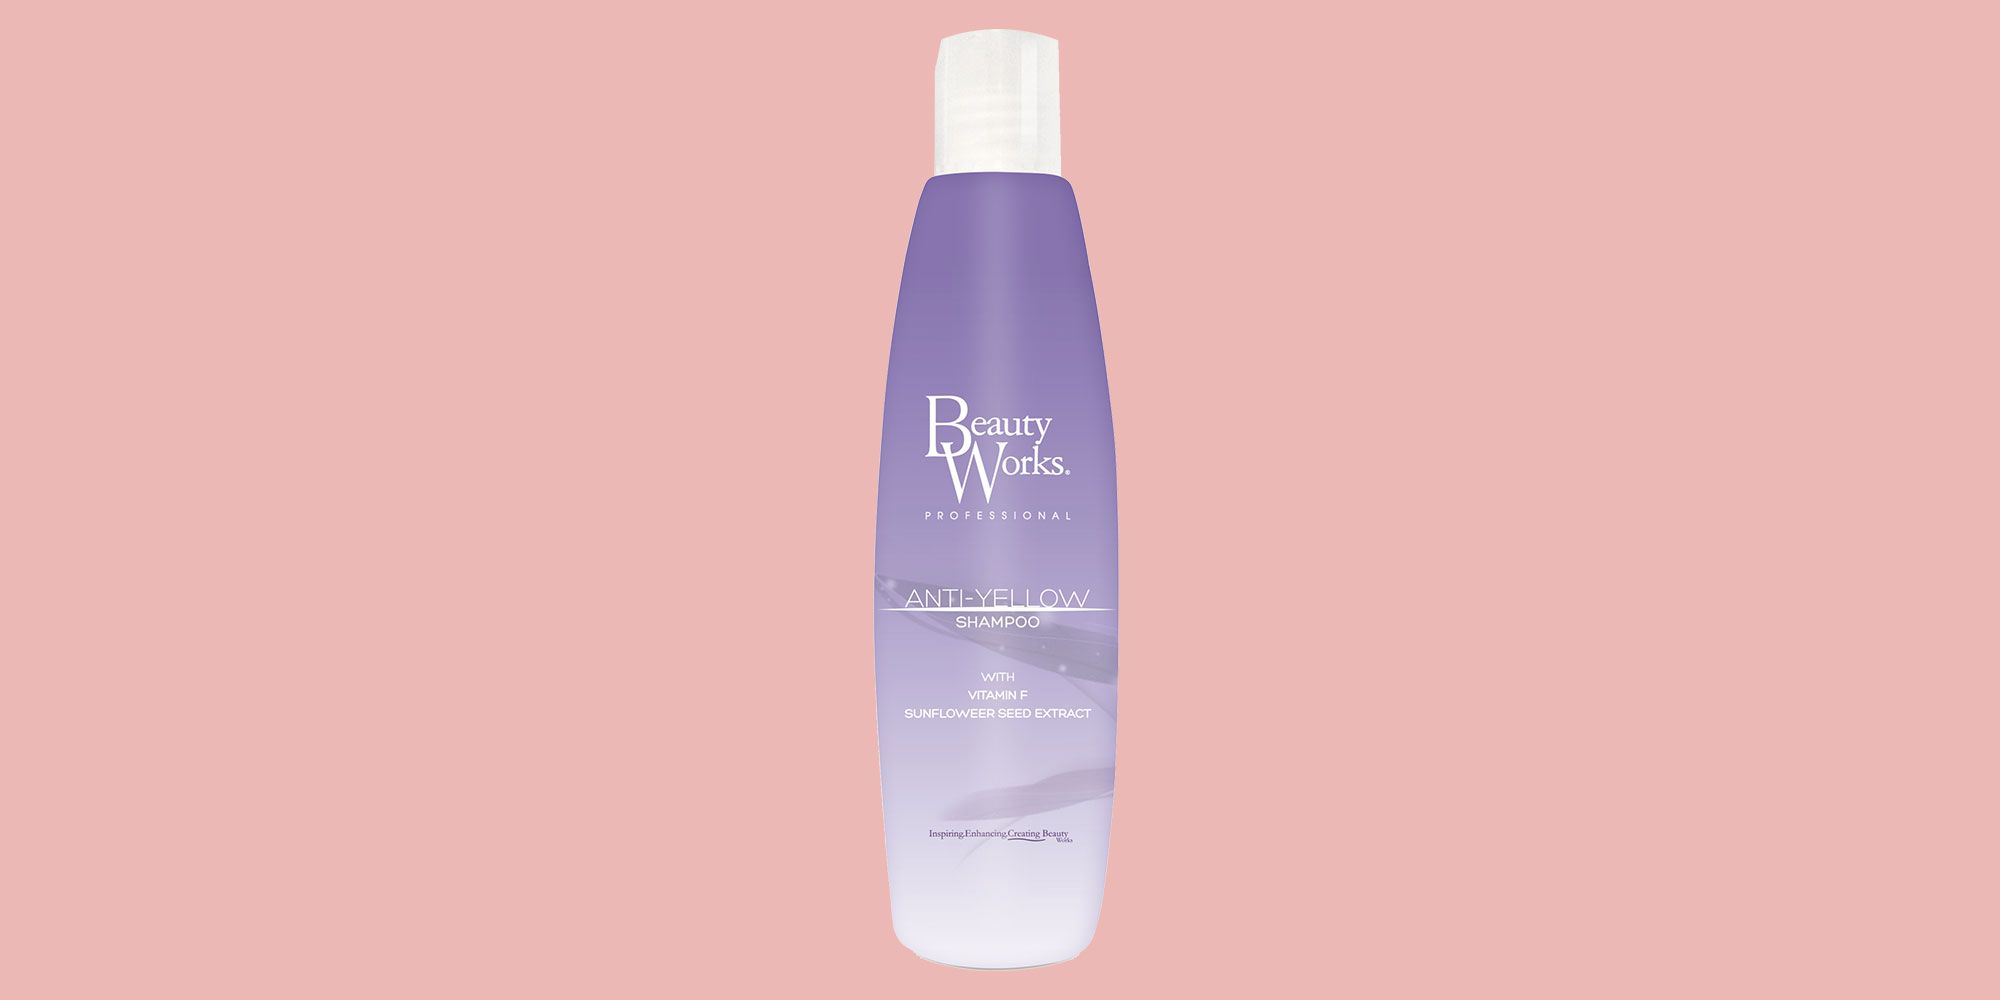 Beauty Works Anti-Yellow Shampoo